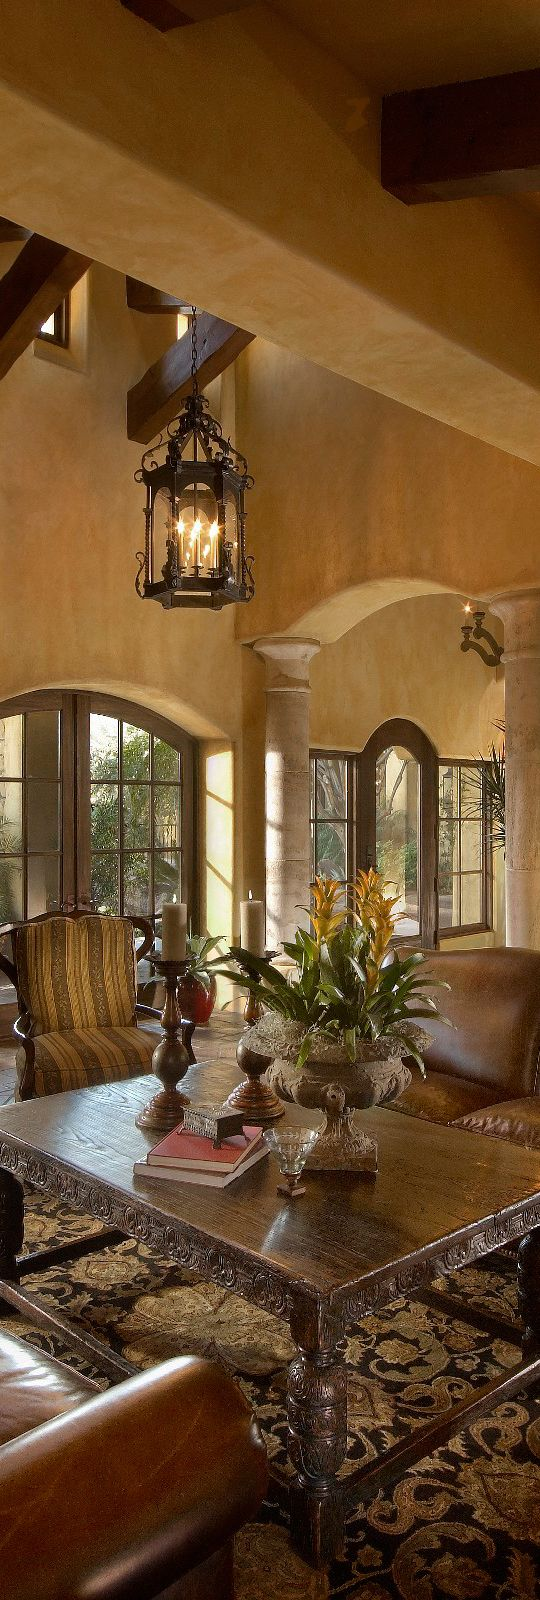 Mediterranean restaurant decor - Mediterranean Tuscany Old World Style More